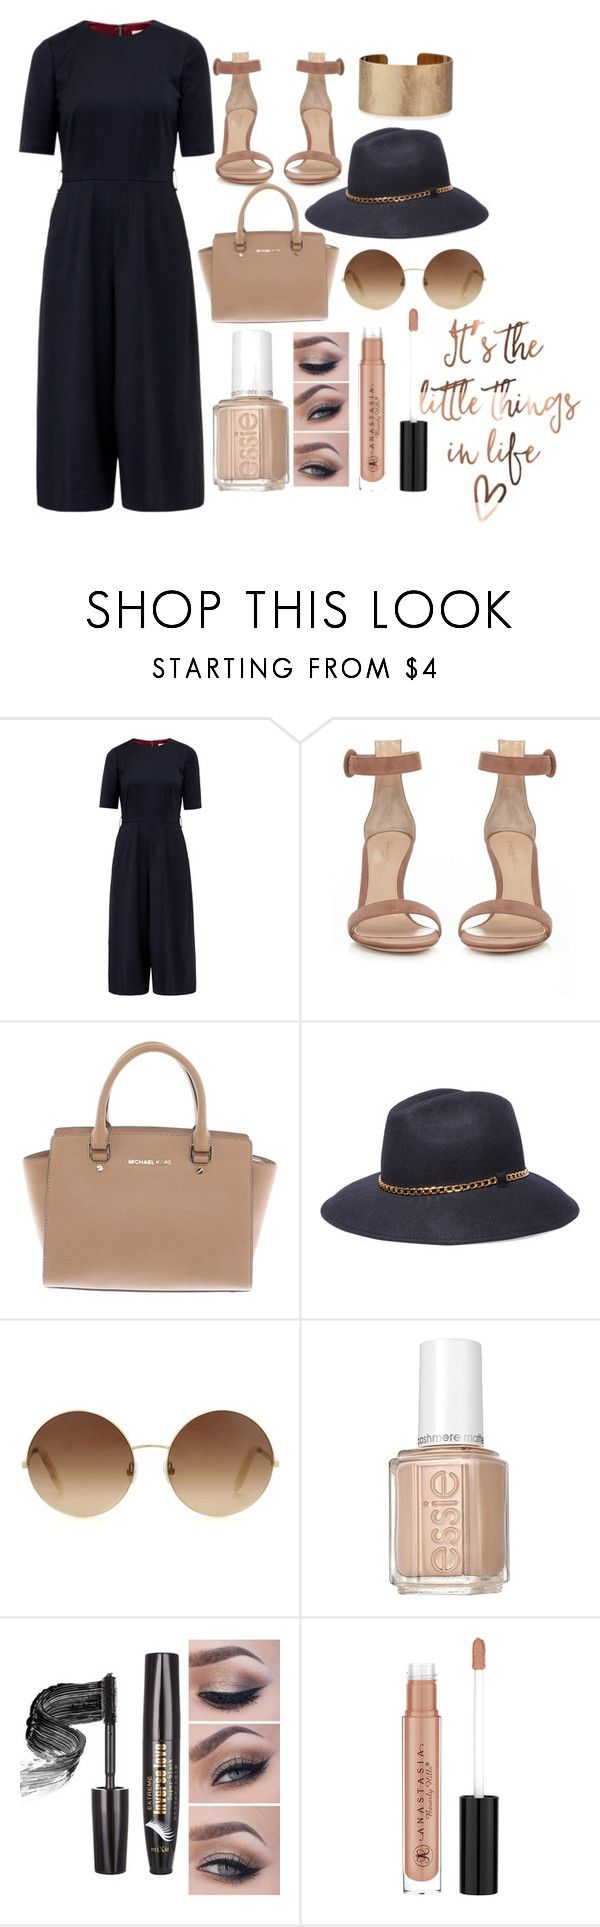 """""""The little things in life that make it 👍🏾"""" by fashionistaintheseason ❤ liked on Polyvore featuring Ted Baker, Gianvito Rossi, Michael Kors, 8, Victoria Beckham, Essie, Anastasia Beverly Hills and Panacea"""